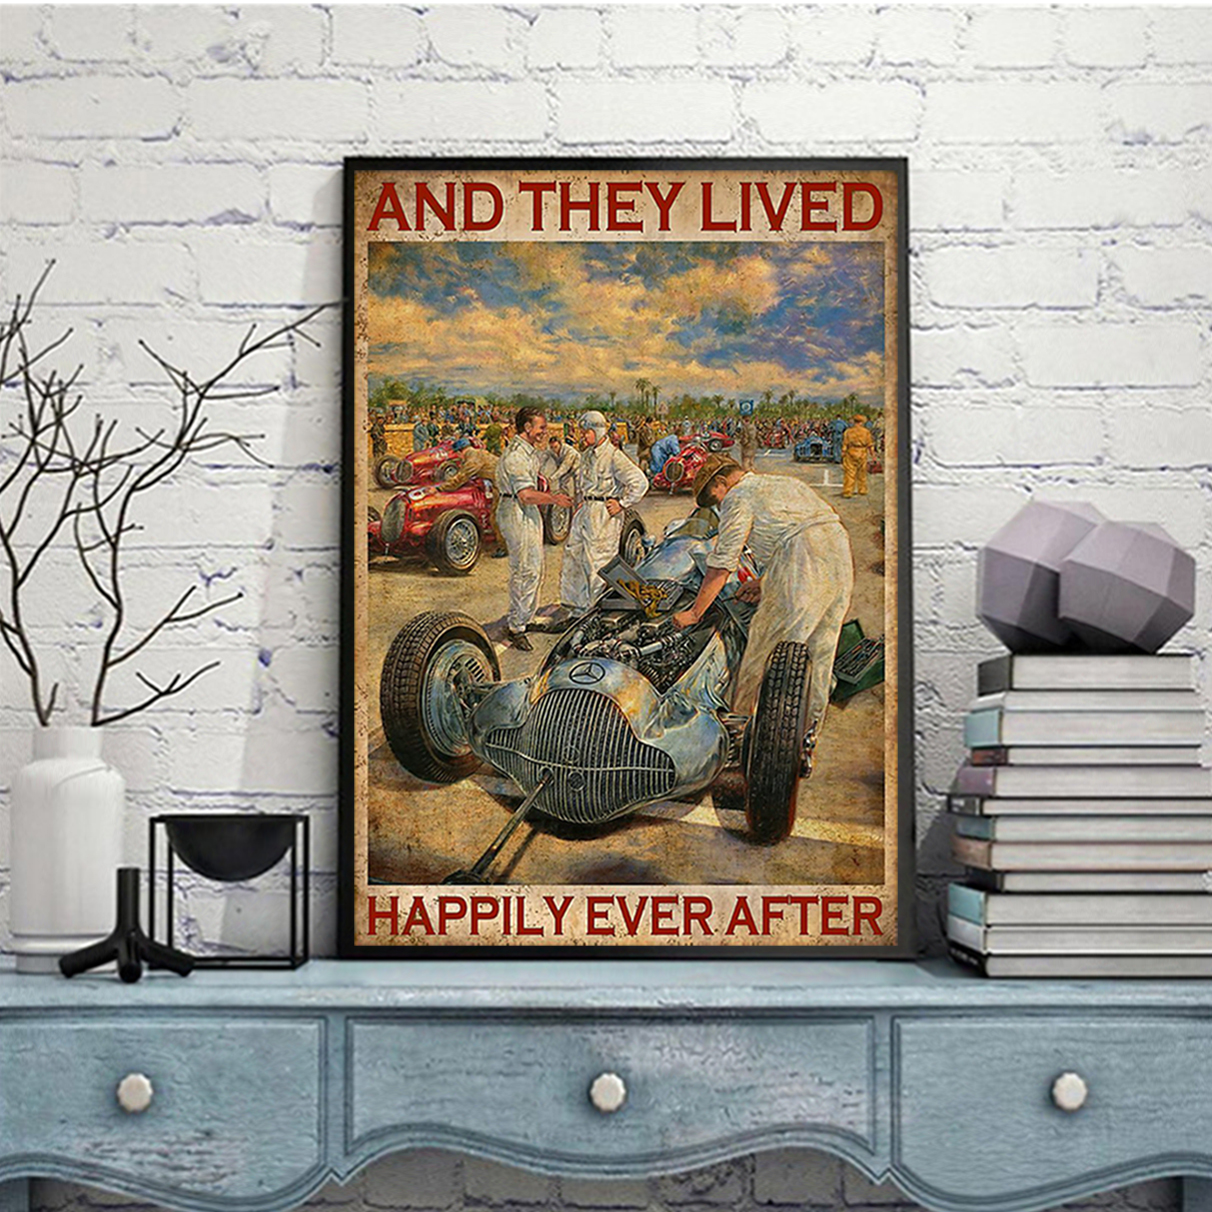 Grand prix motor and they lived happily ever after poster A3